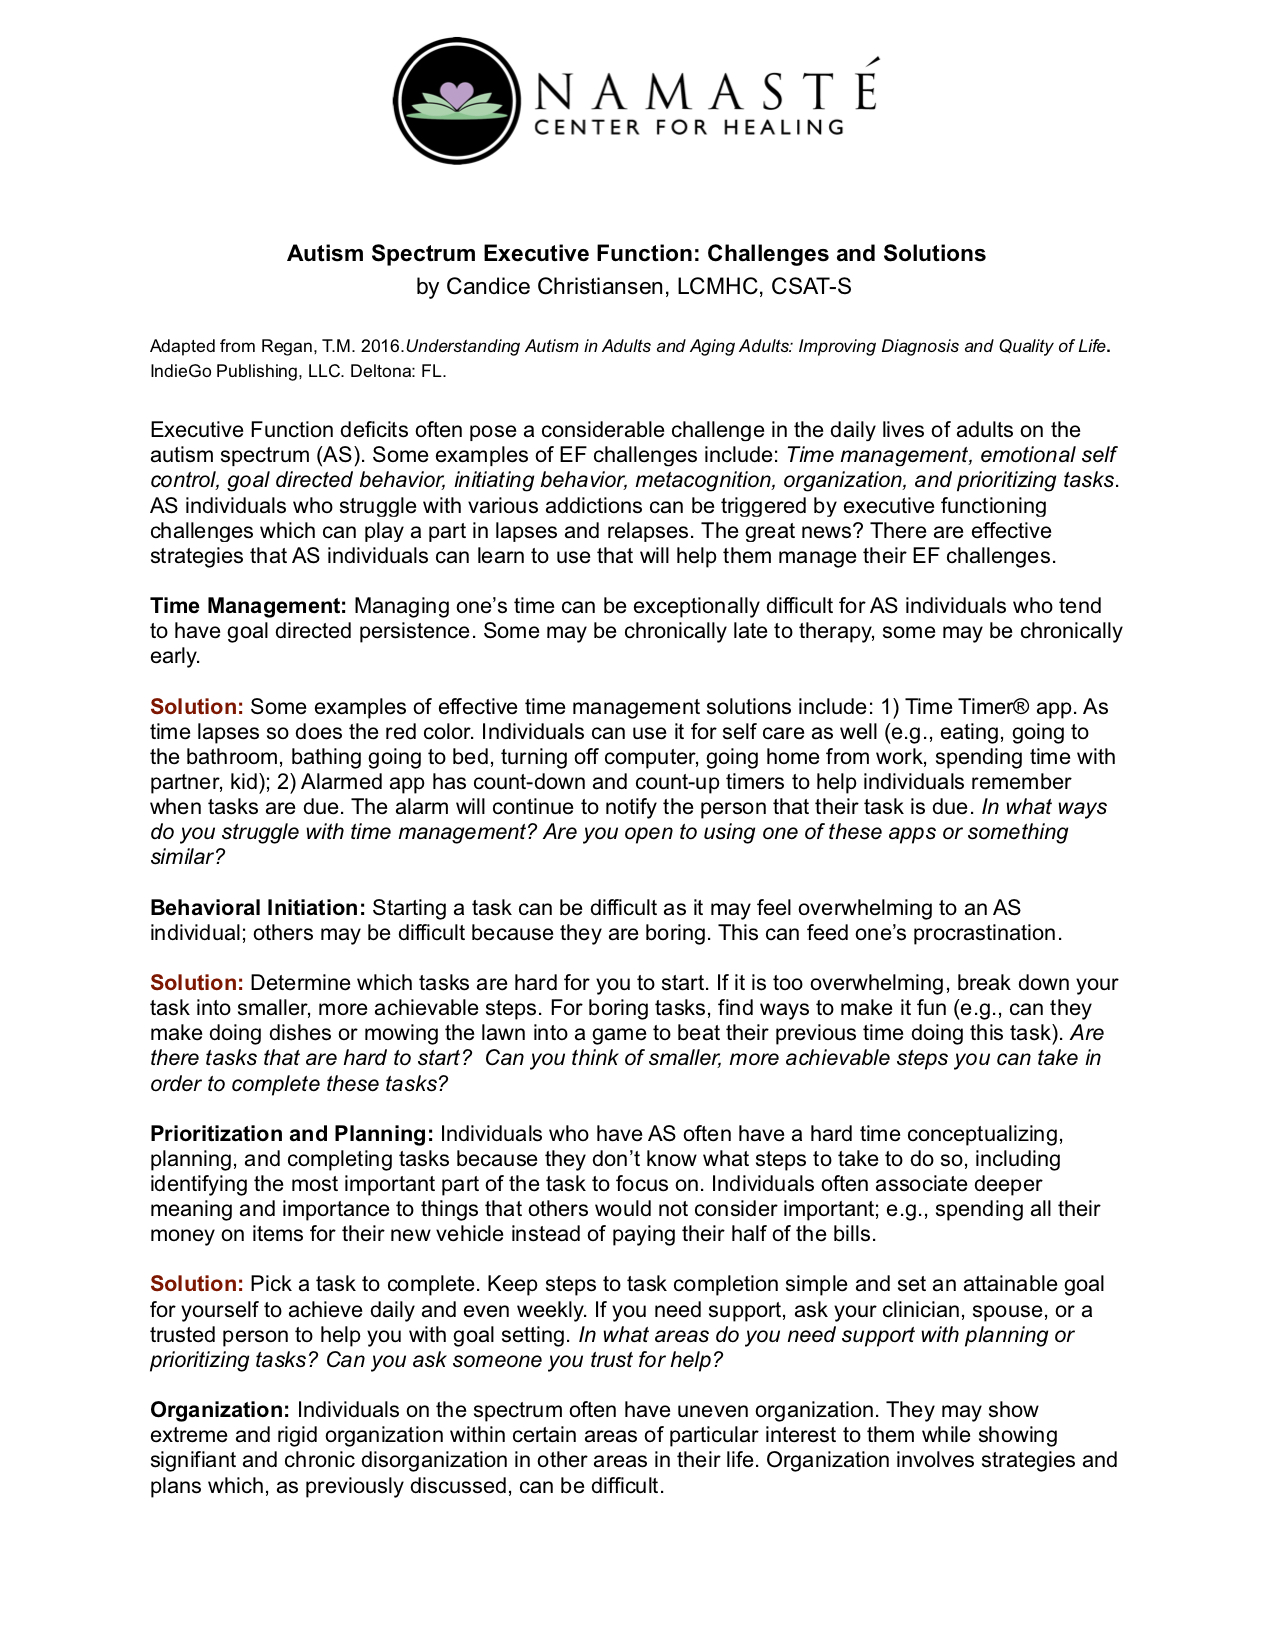 Autism Spectrum Executive Function: Challenges and Solutions - By Candice Christiansen, LCMHC, CSAT-S, C-EMDR